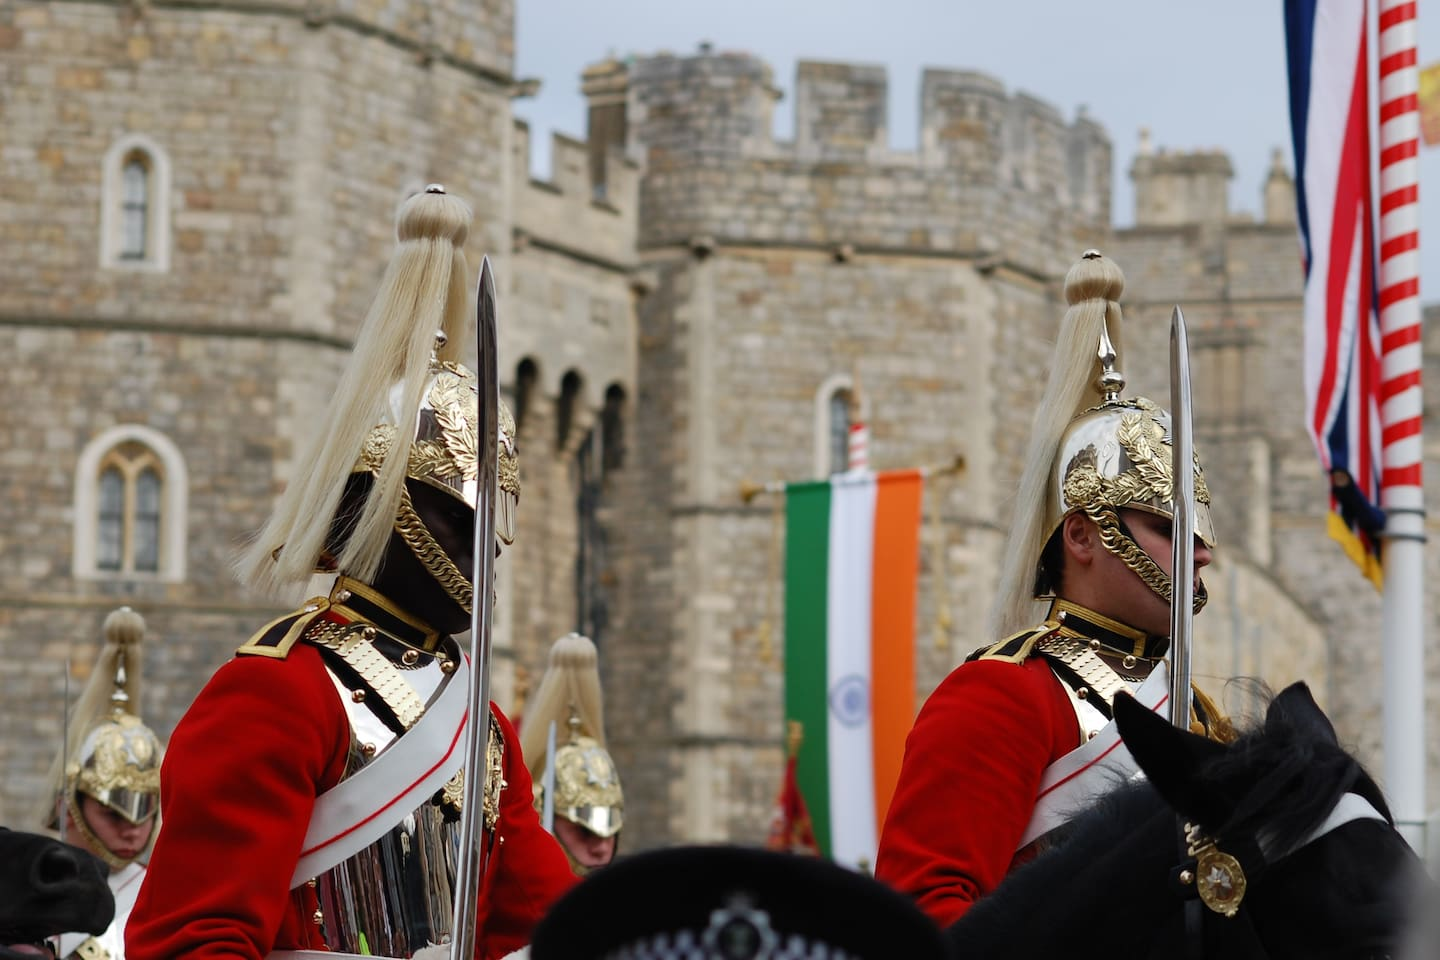 Windsor https://a0.muscache.com/im/pictures/c5dc7677-94e2-49ed-a9ca-95bc7d9827b1.jpg?aki_policy=x_large